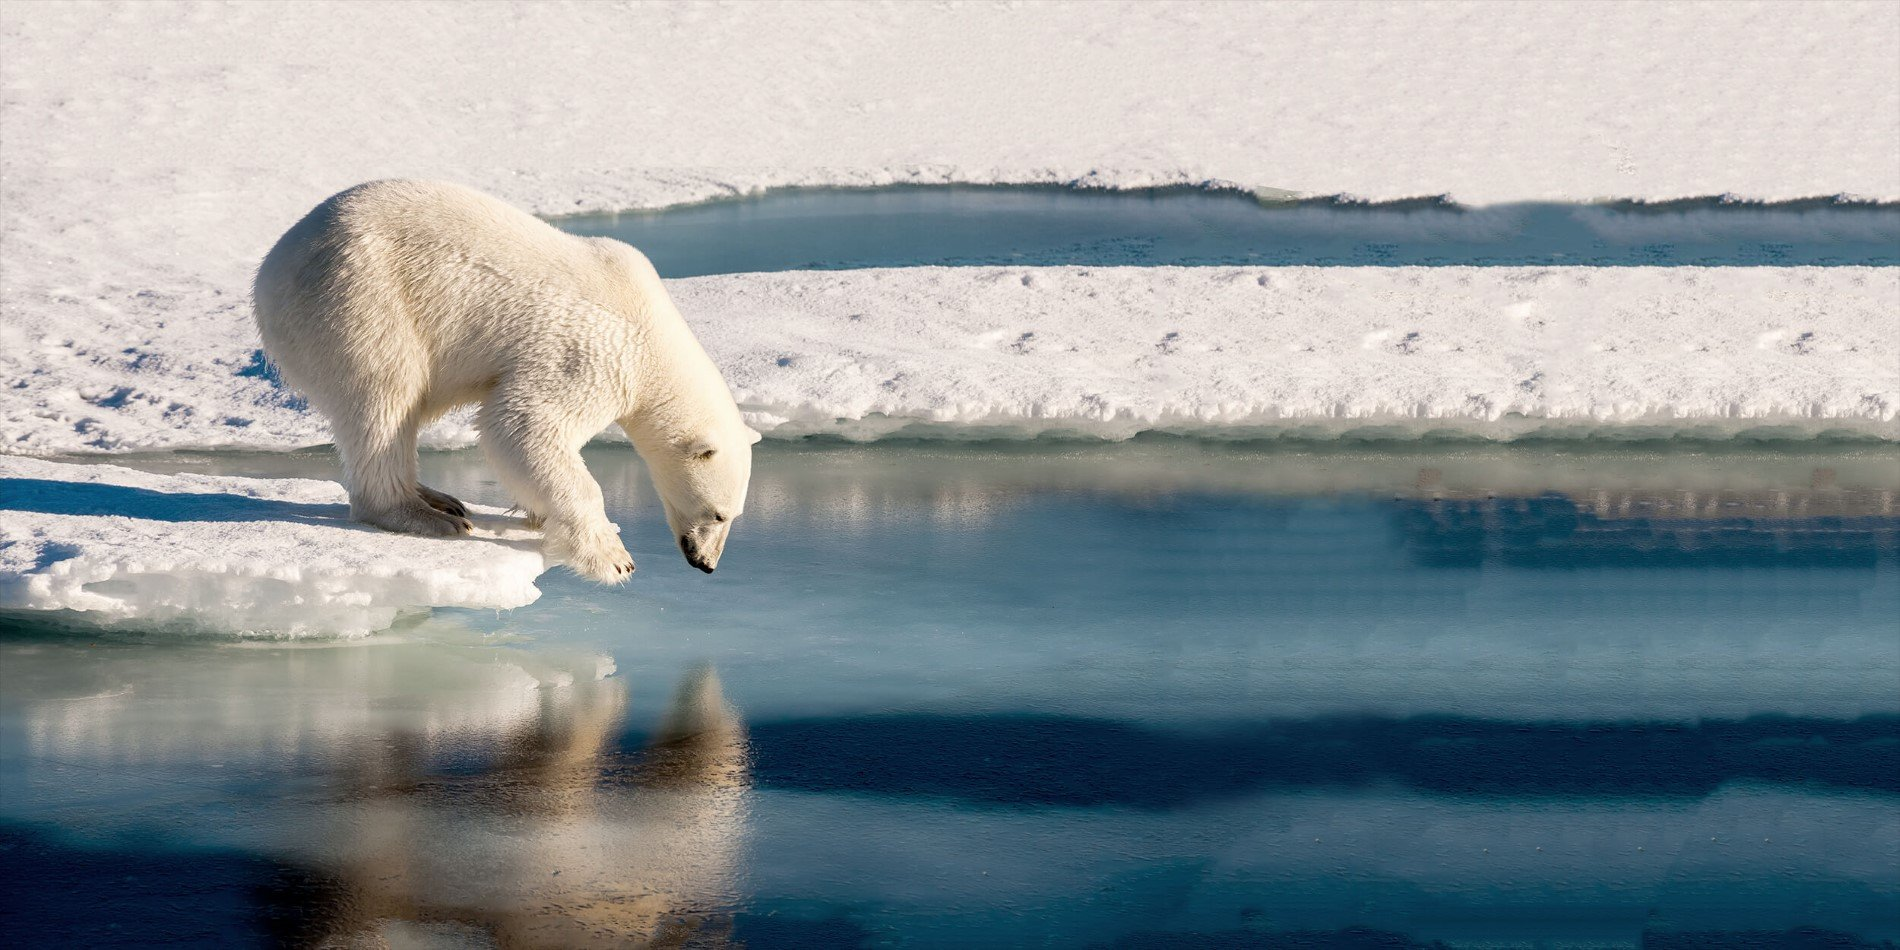 A polar bear standing next to a body of water